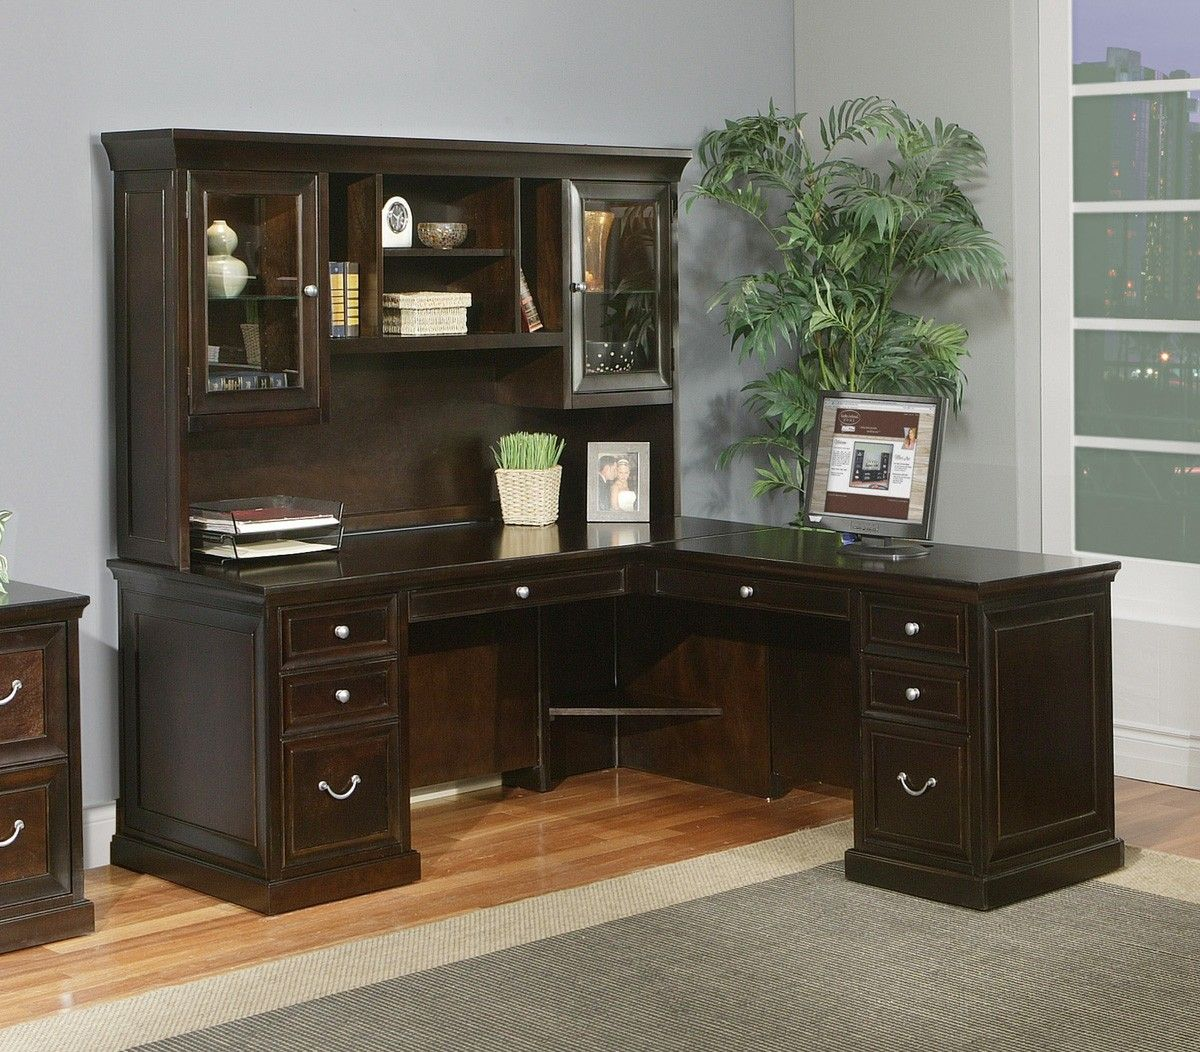 Delightful Furniture: Beautiful Mainstays L Shaped Desk With Hutch Plus Storage And  Computer Set In A